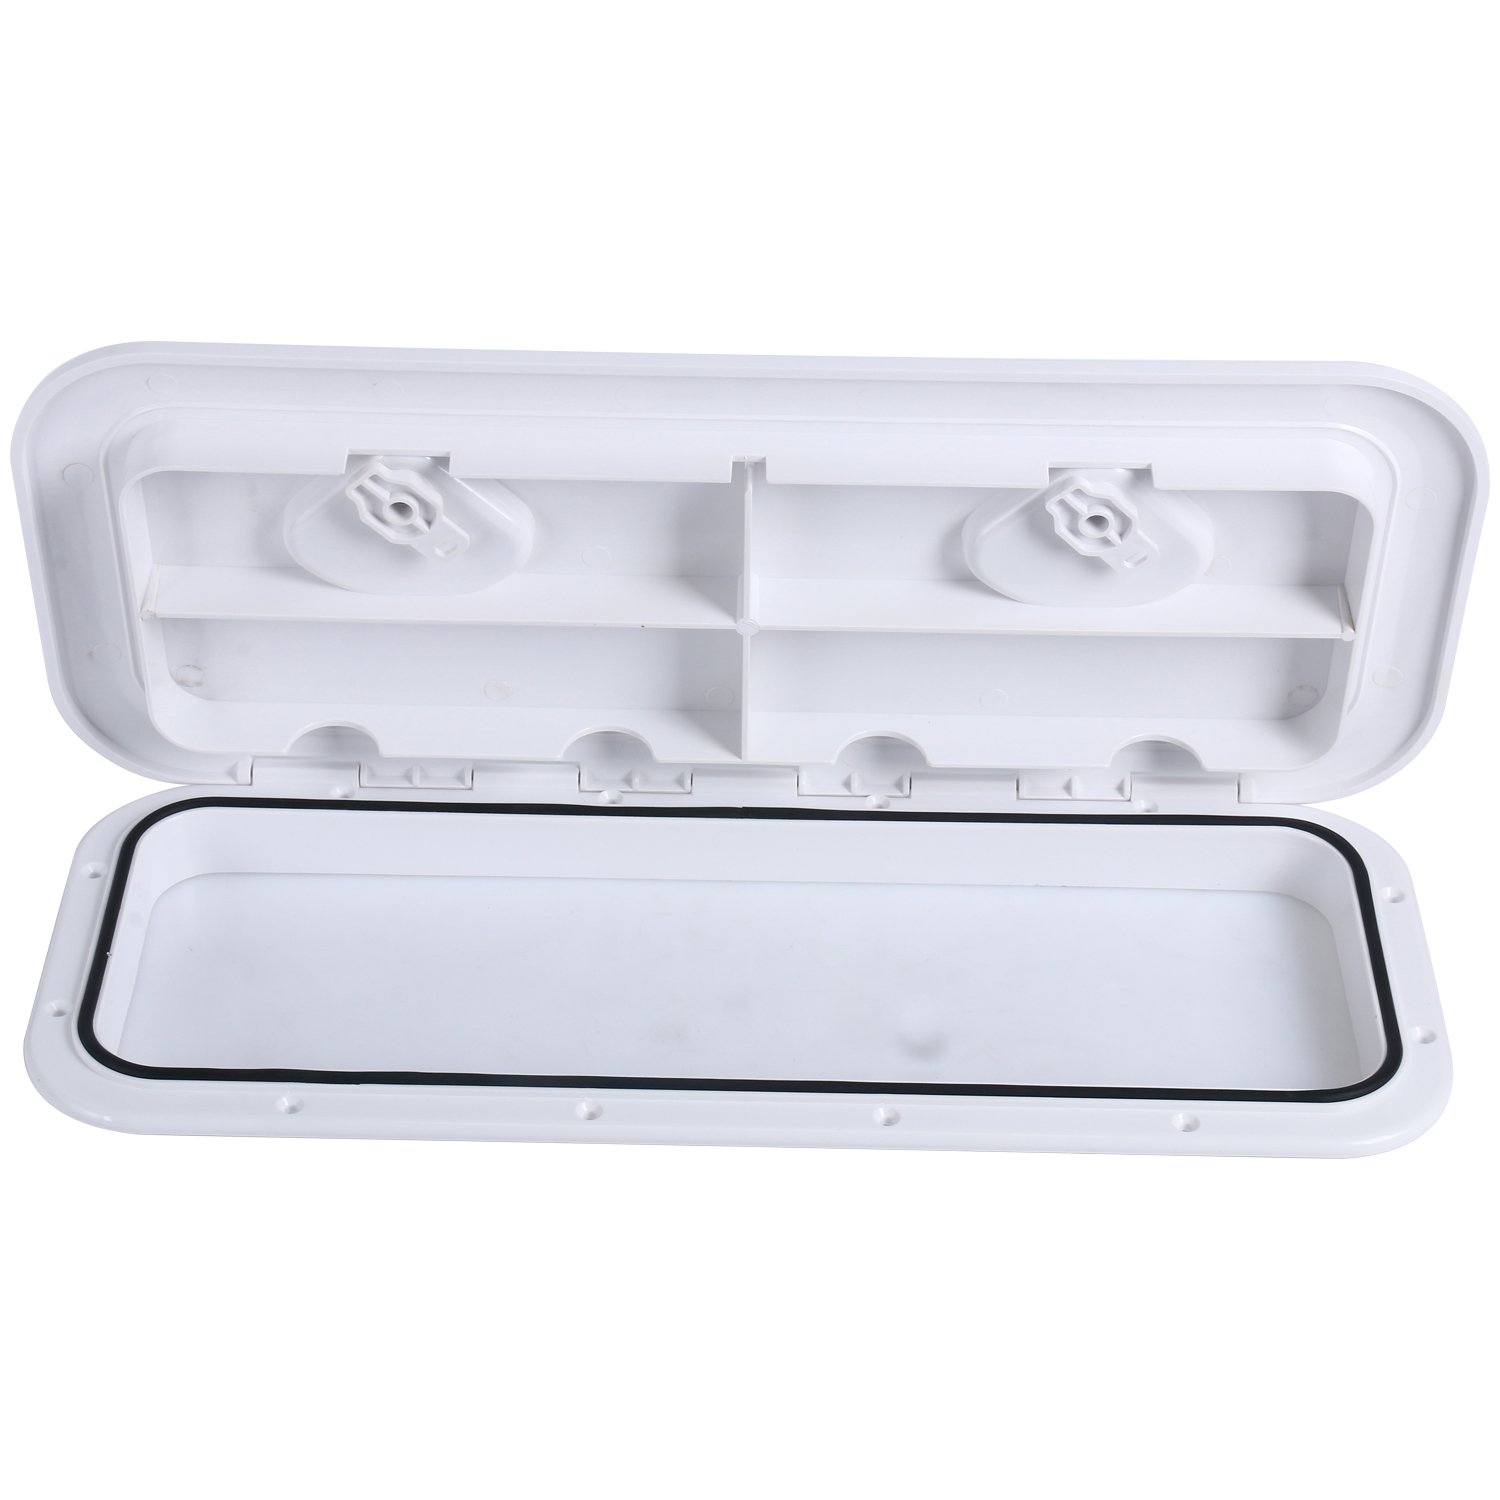 Amarine Made Access Hatch & LID 24'' x 9-5/8'' -Marine Caravan/RV -Boat by Amarine Made